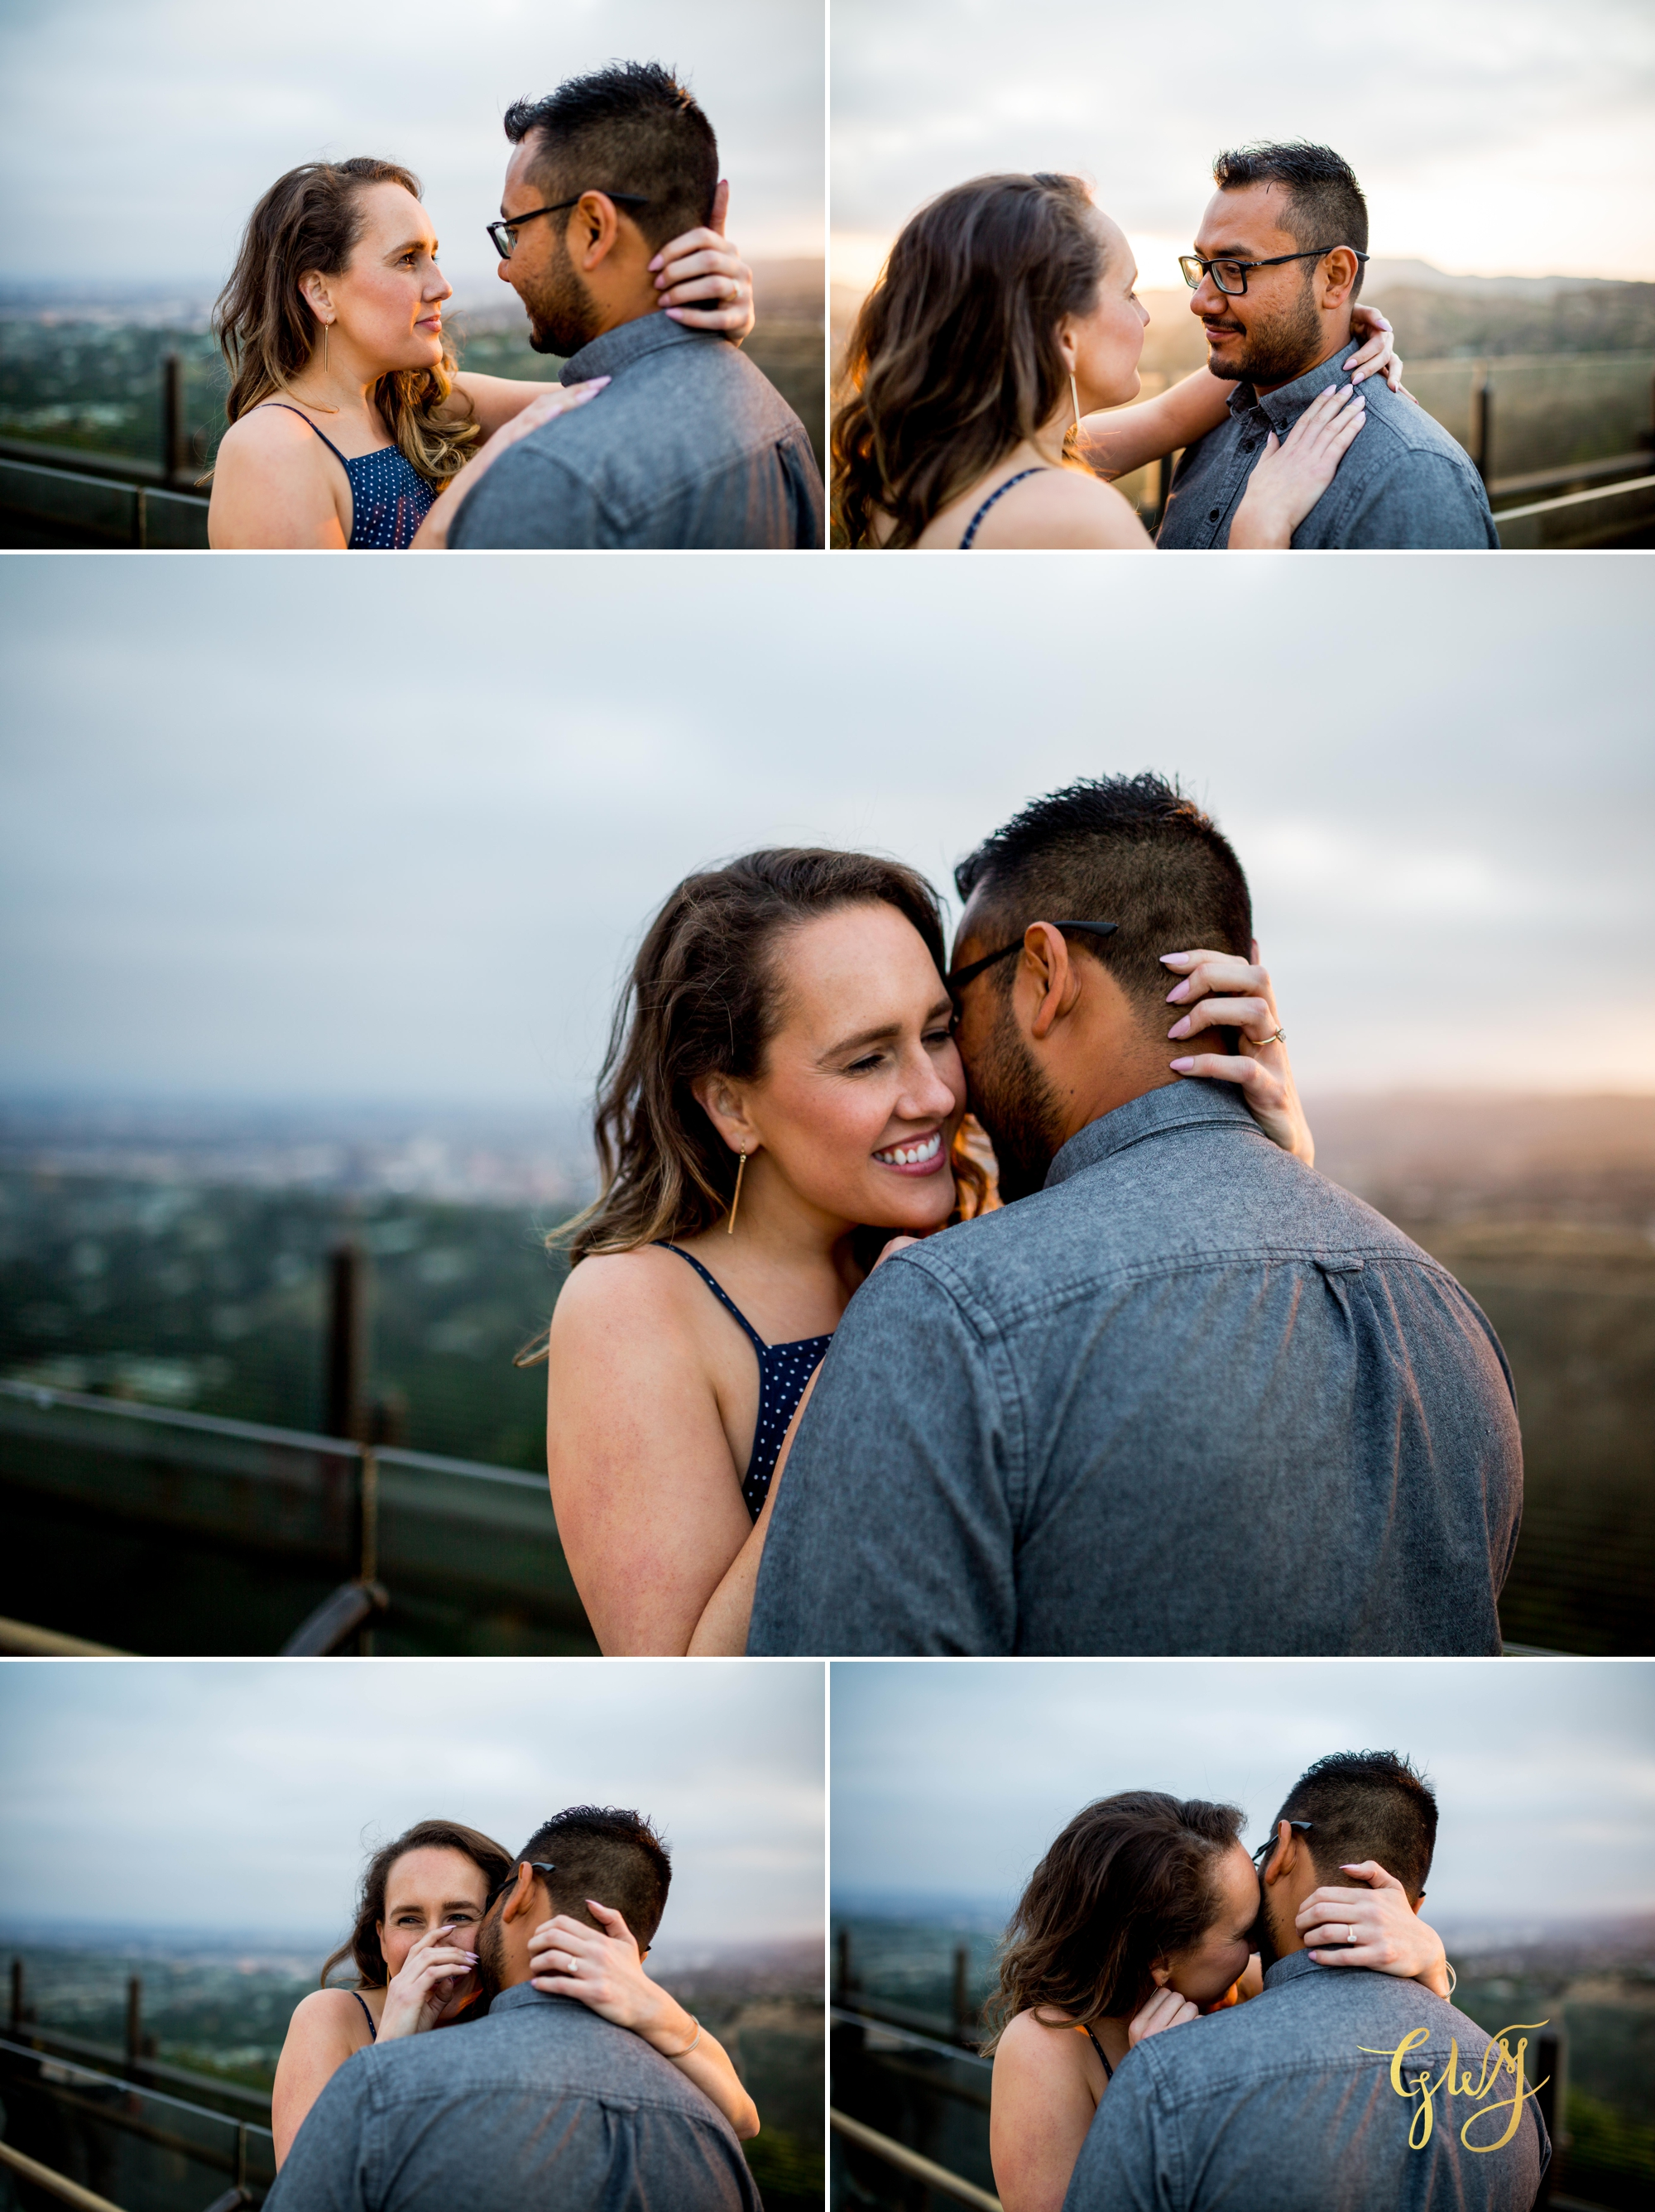 Emily + Gilbert's Griffith Observatory LA Dreamy Sunset Engagement Session by Glass Woods Media 17.jpg